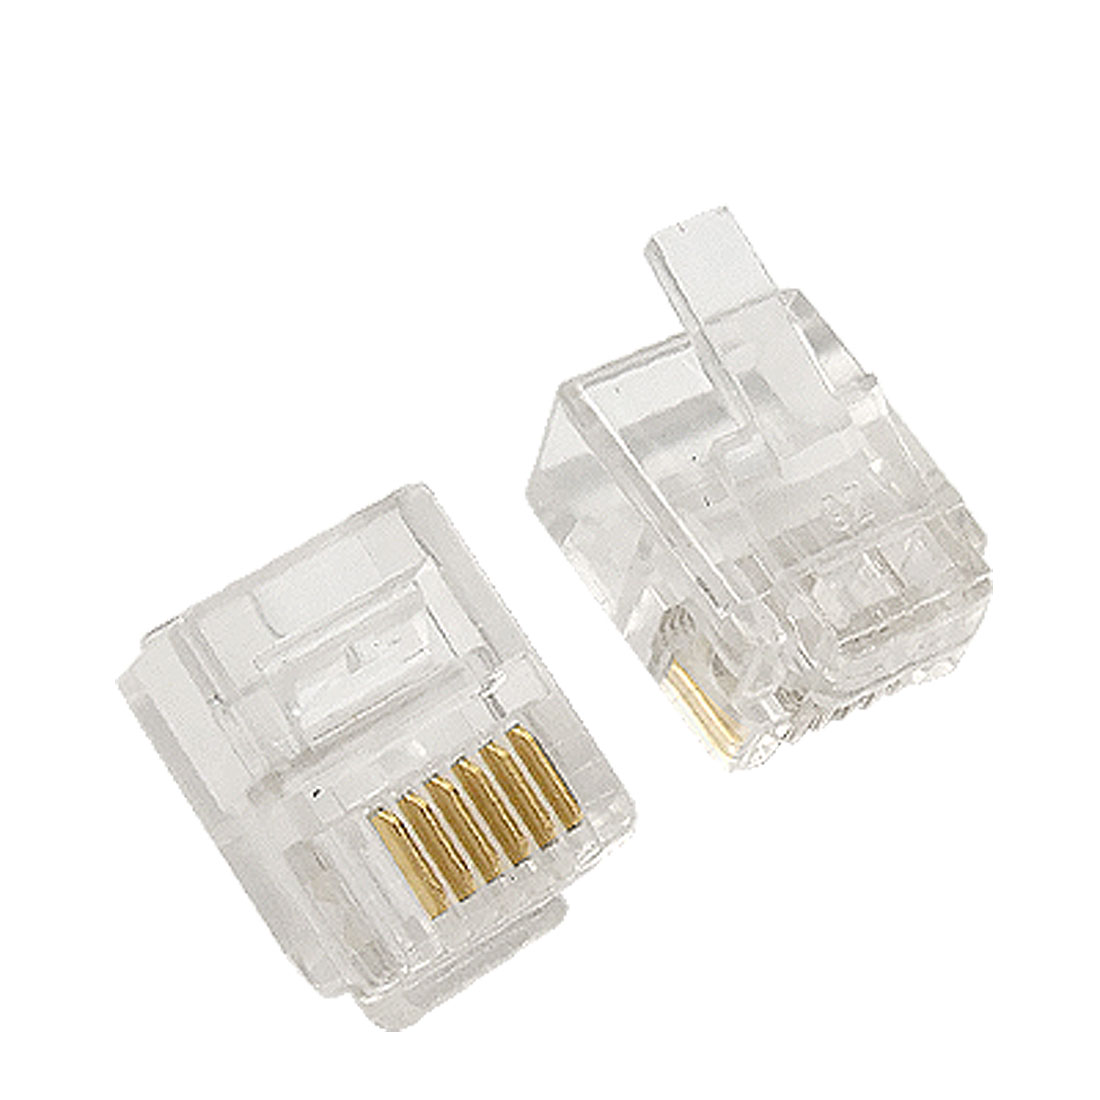 4 Pcs 6 Pin 6 Position RJ12 Plastic Connector for Phone